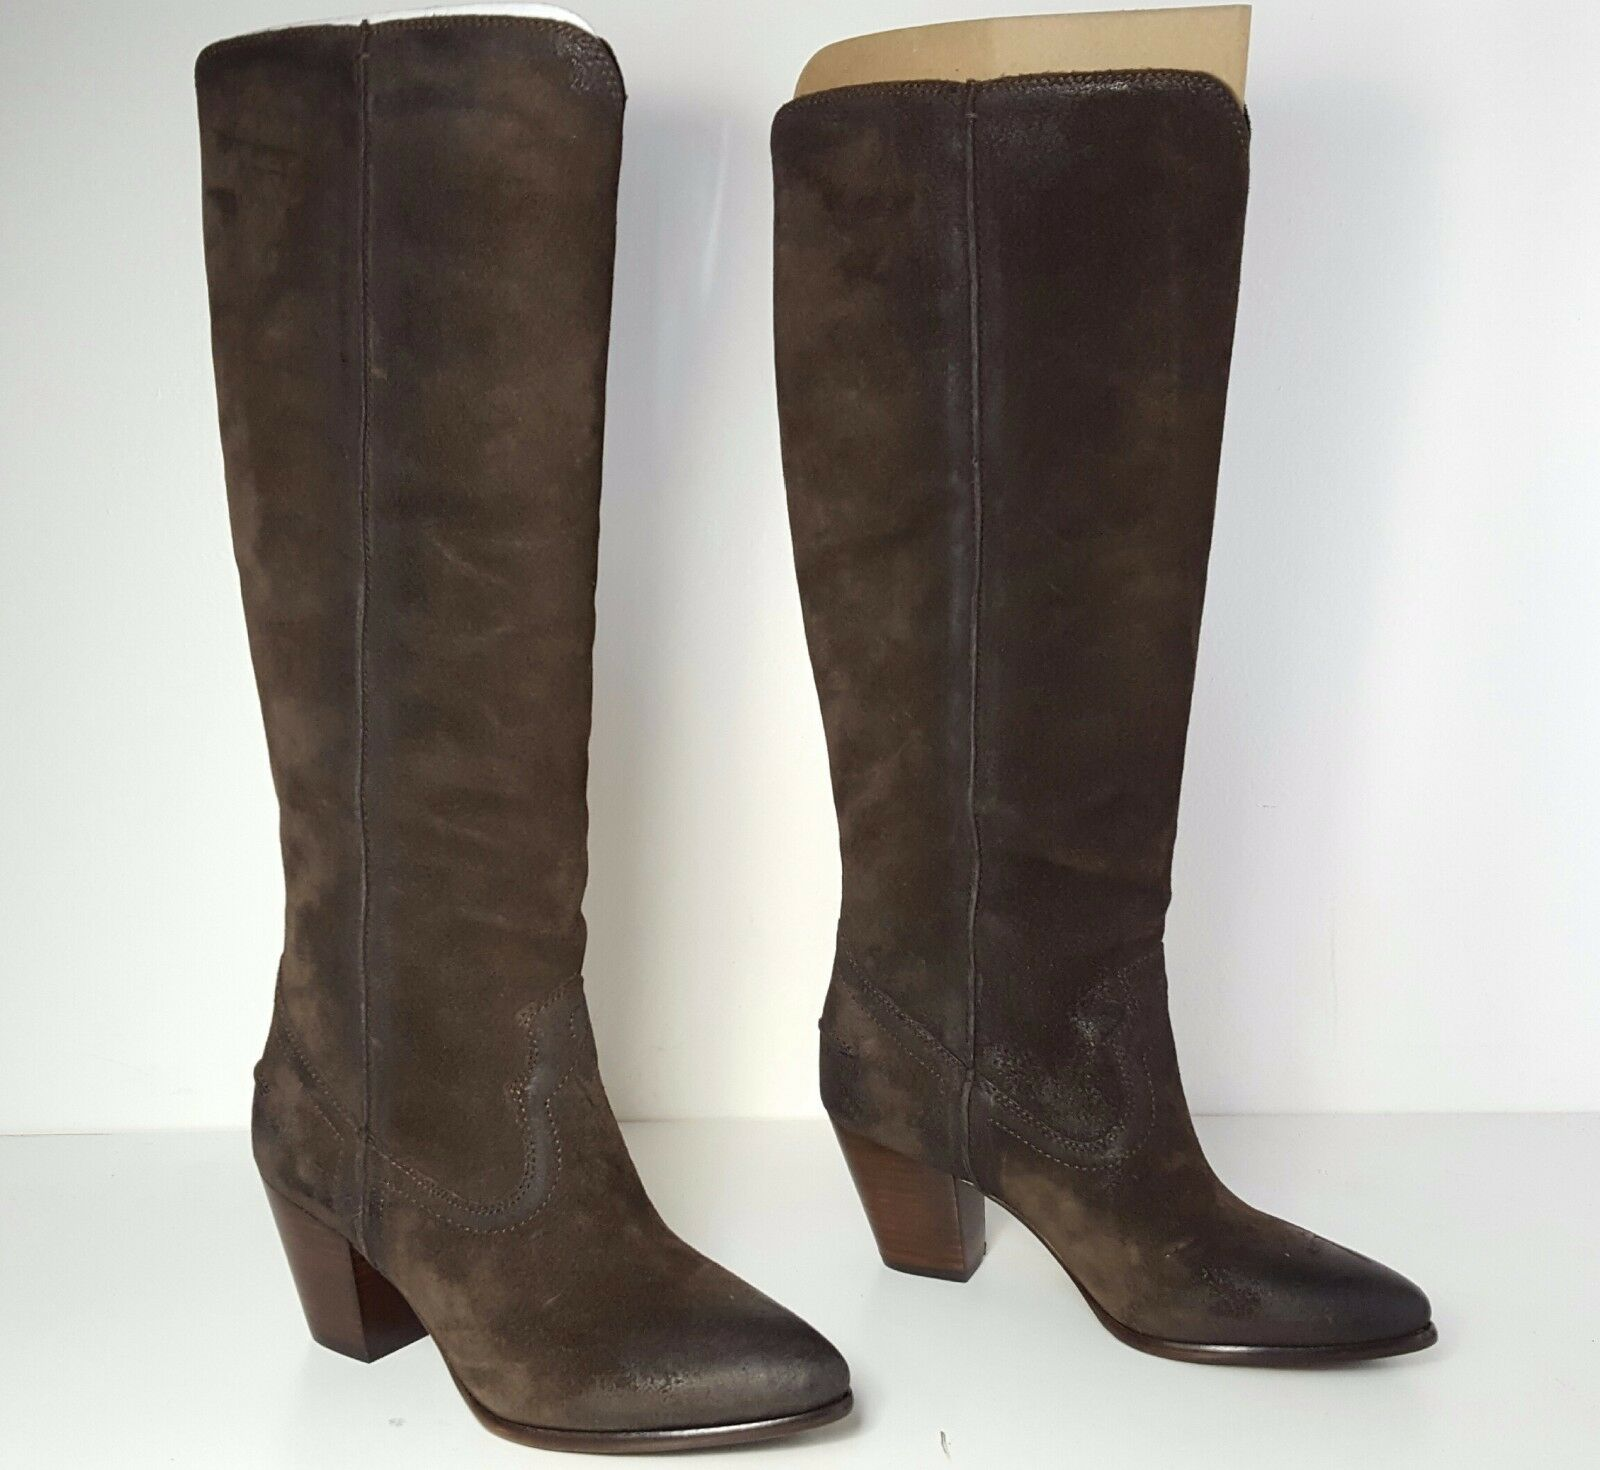 Leather 378 size 7 Frye Renee Seam Tall Charcal Leather  Heels Boots Donna Shoes d8a908